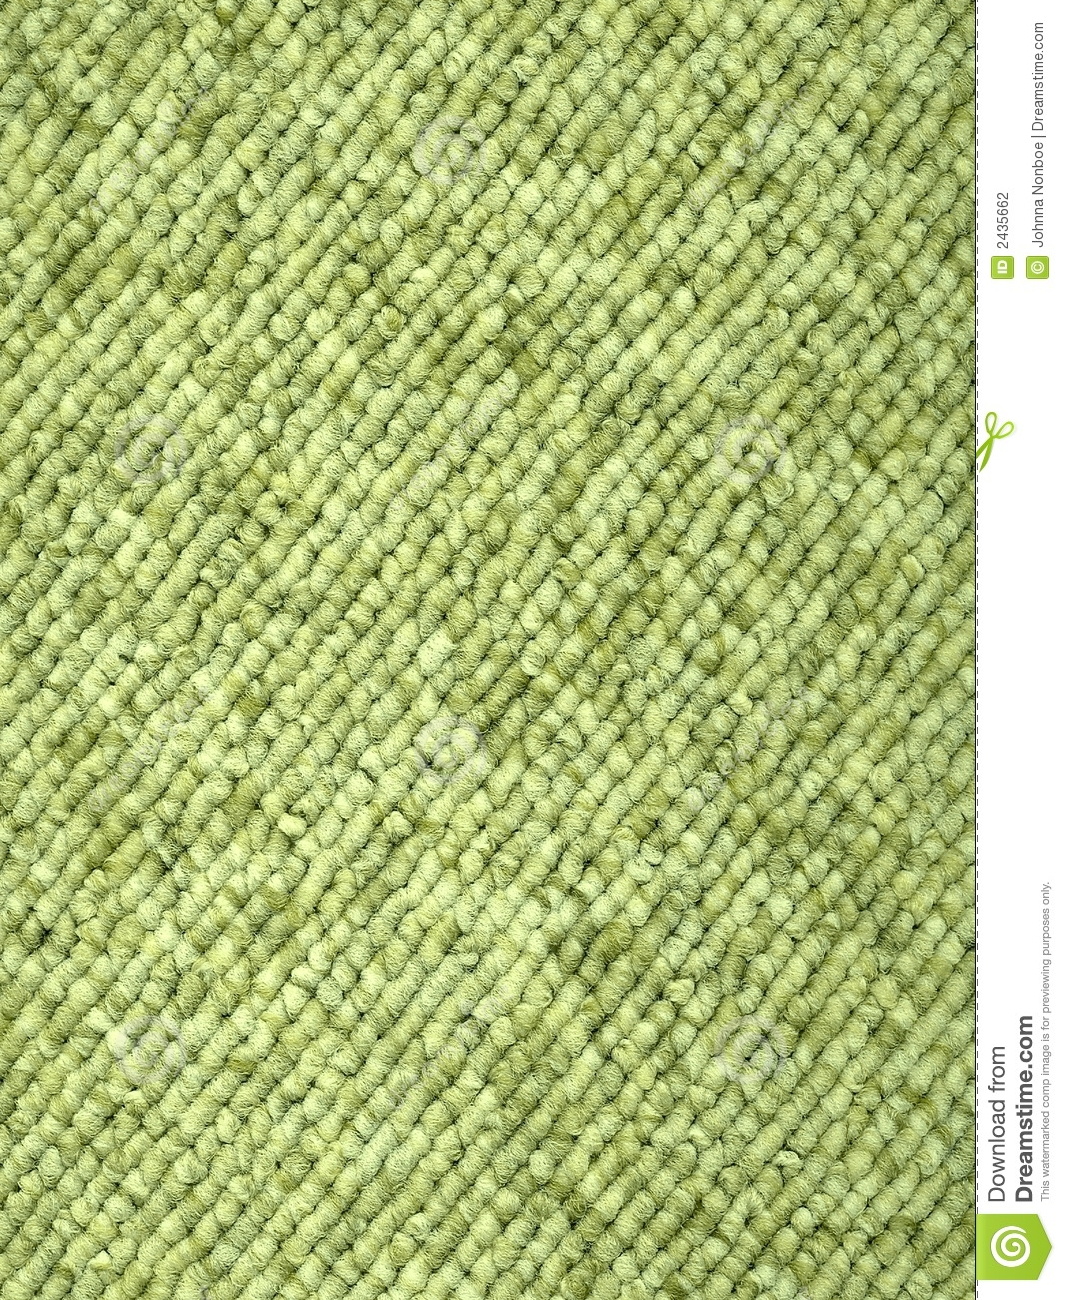 Green Loop Woven Carpet Stock Photography Image 2435662